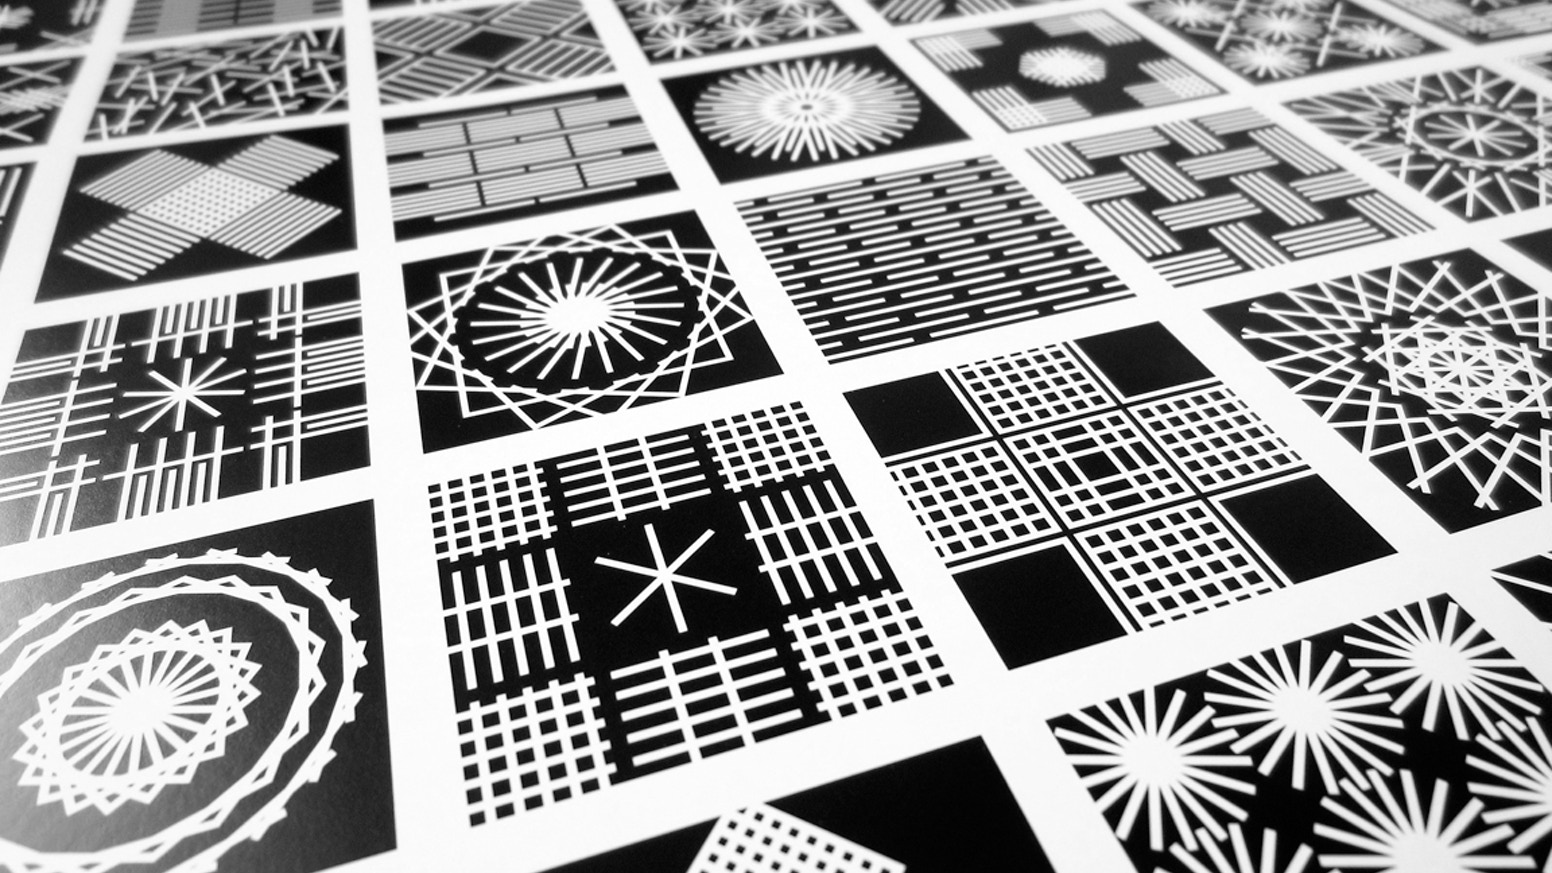 The Last One... is the final leg of the One to One Hundred design project. Each 100 panel poster represents numbers from 1 to 100.